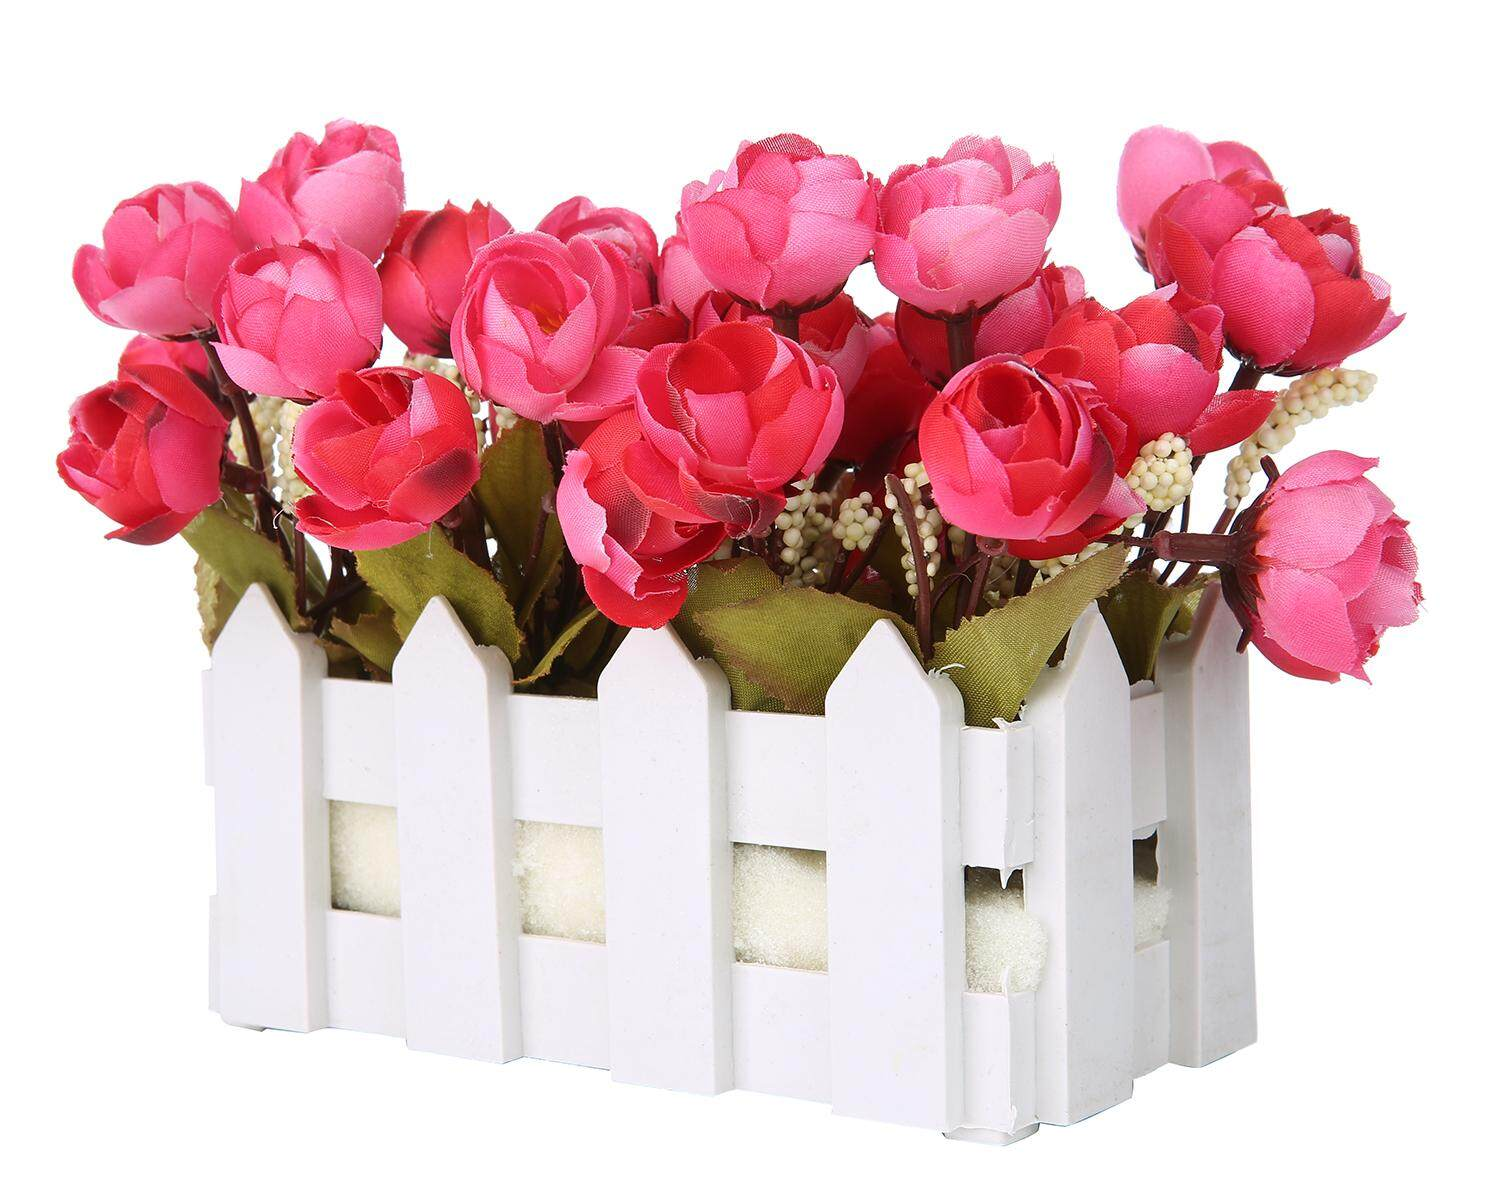 yongcai Artificial Flowers Small Potted Plant Fake Camellia Sasanqua Set In Picket Fence,wine Red - intl